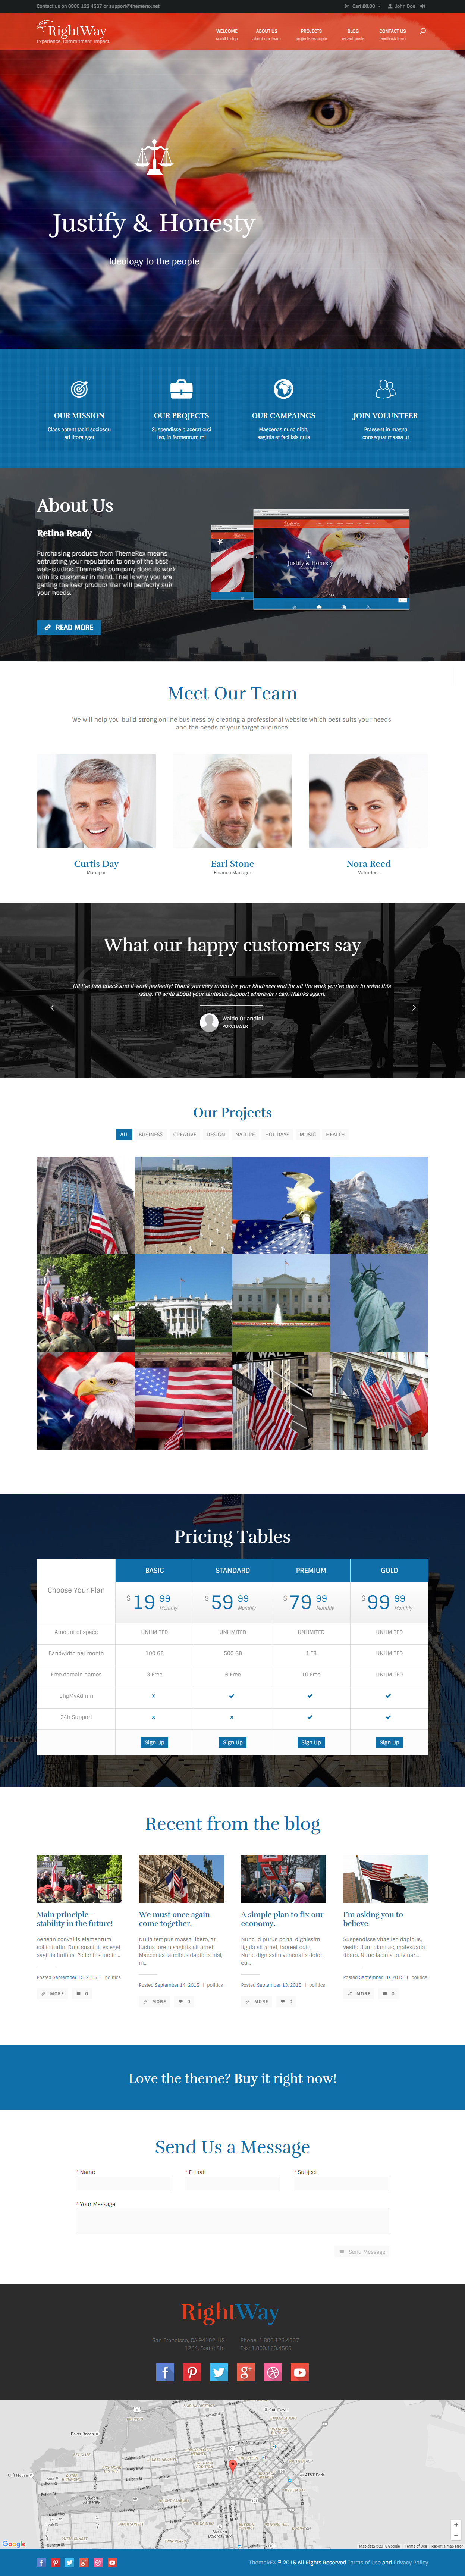 Best responsive government website templates 2017 responsive miracle right way government website templates pronofoot35fo Choice Image